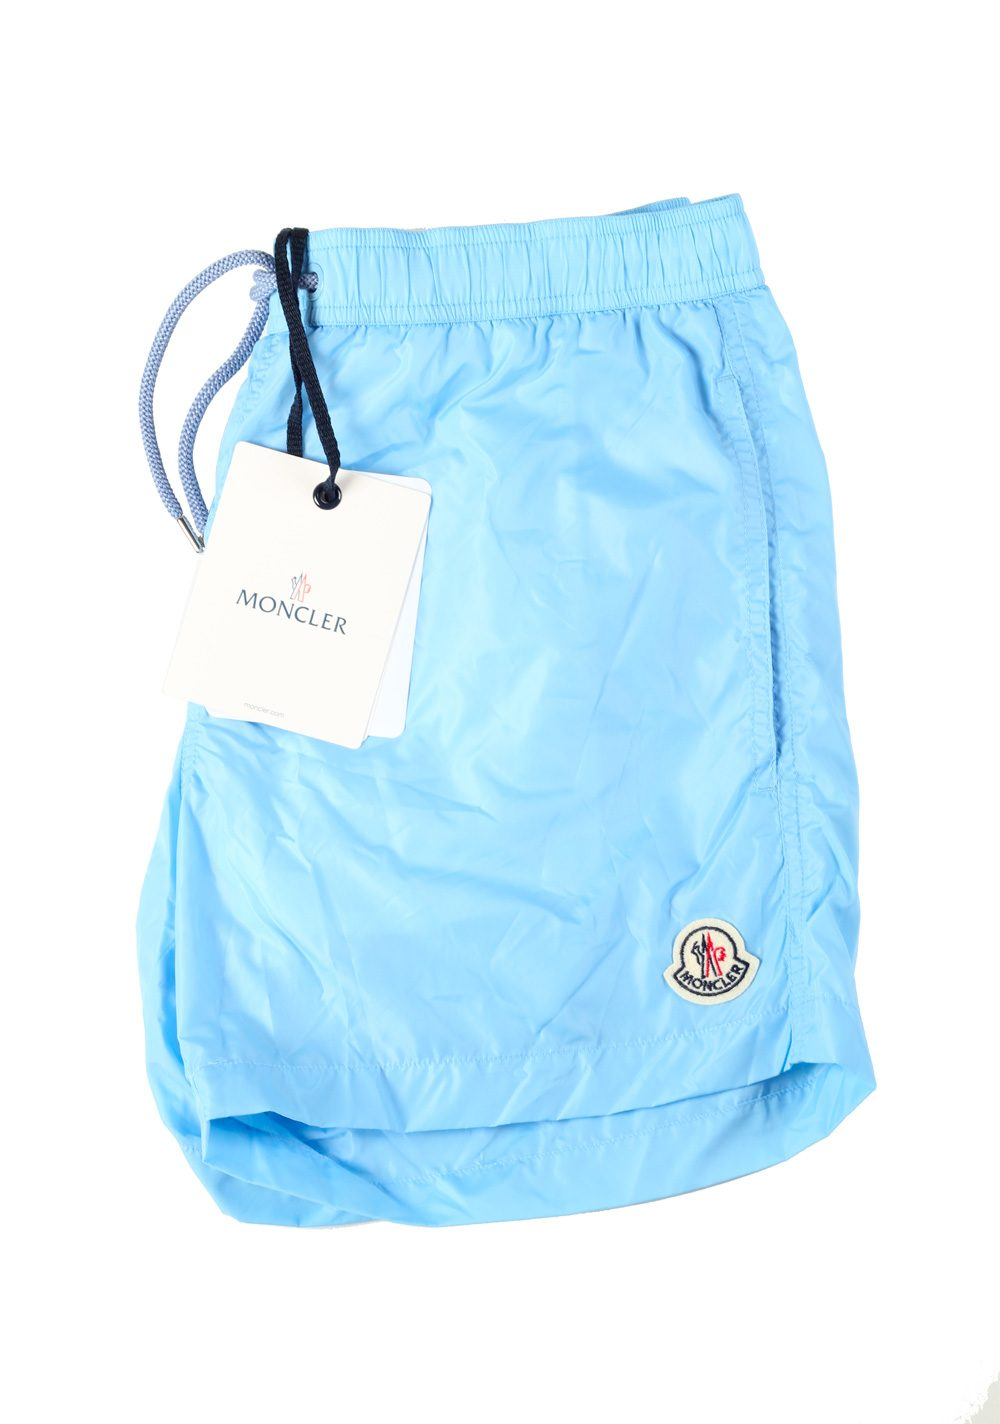 moncler swim shorts light blue